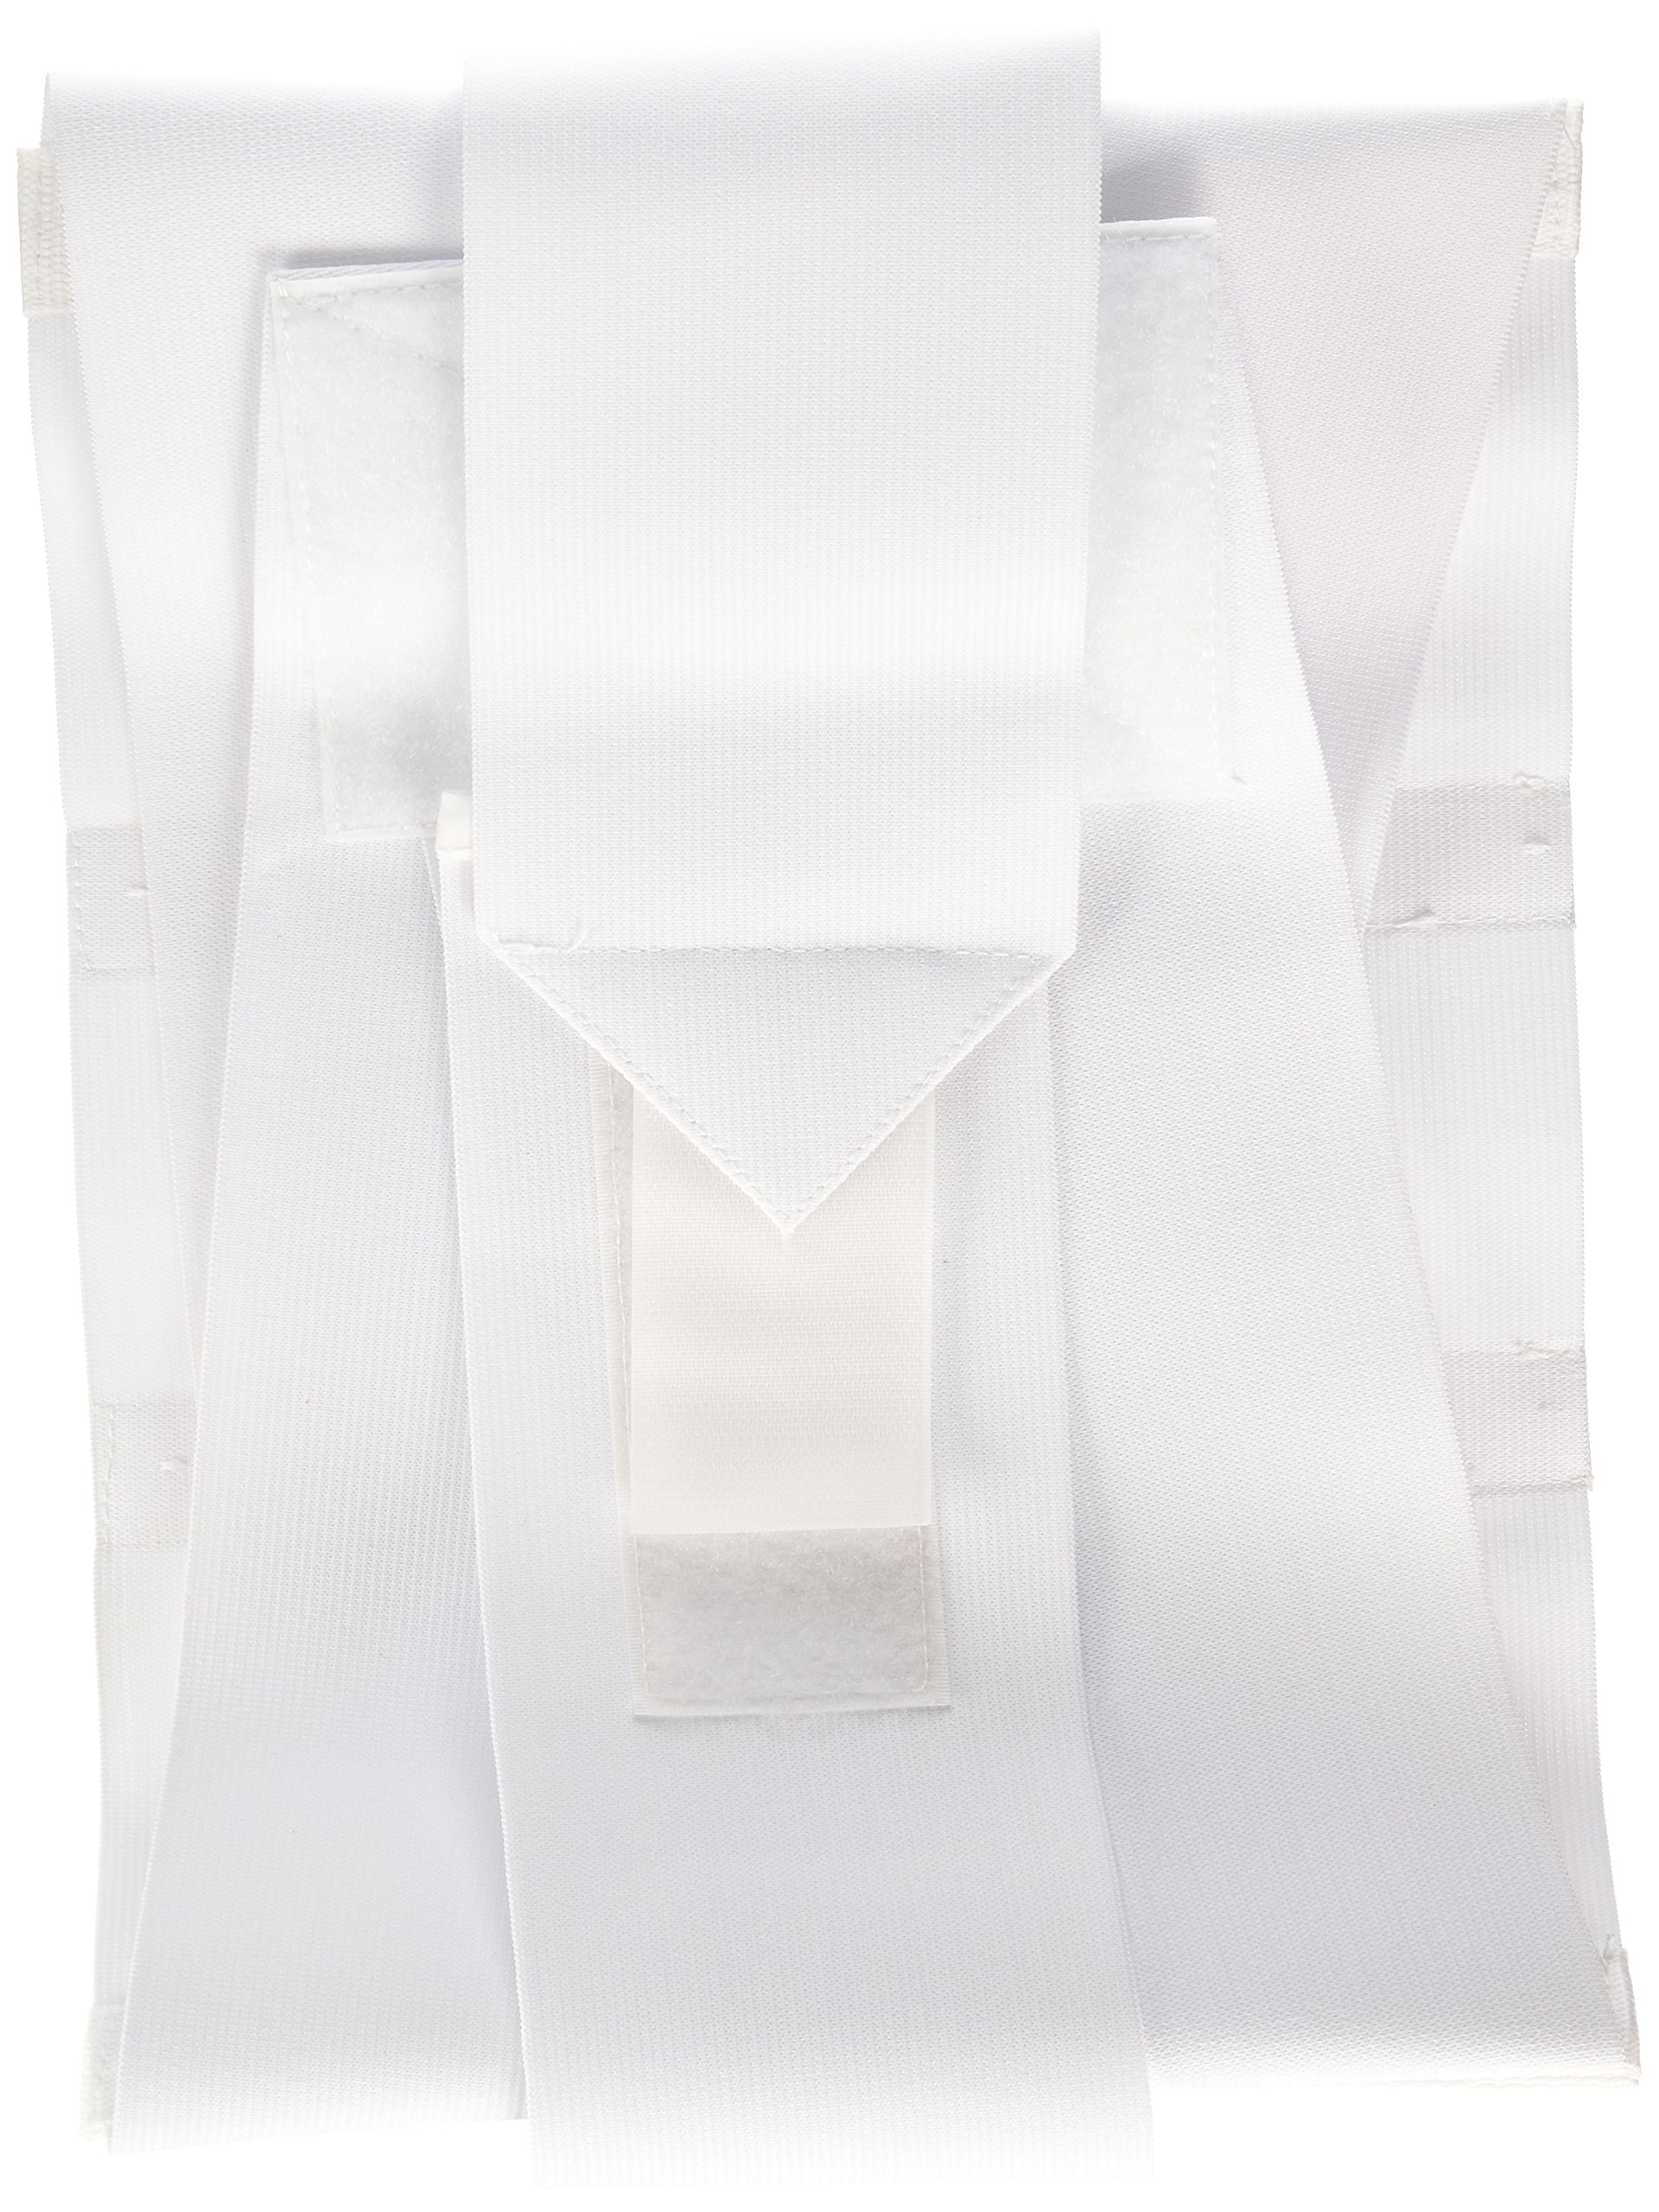 Bilt-Rite Mastex Health 10 Inch Criss-Cross Support with Steels, White, X-Large